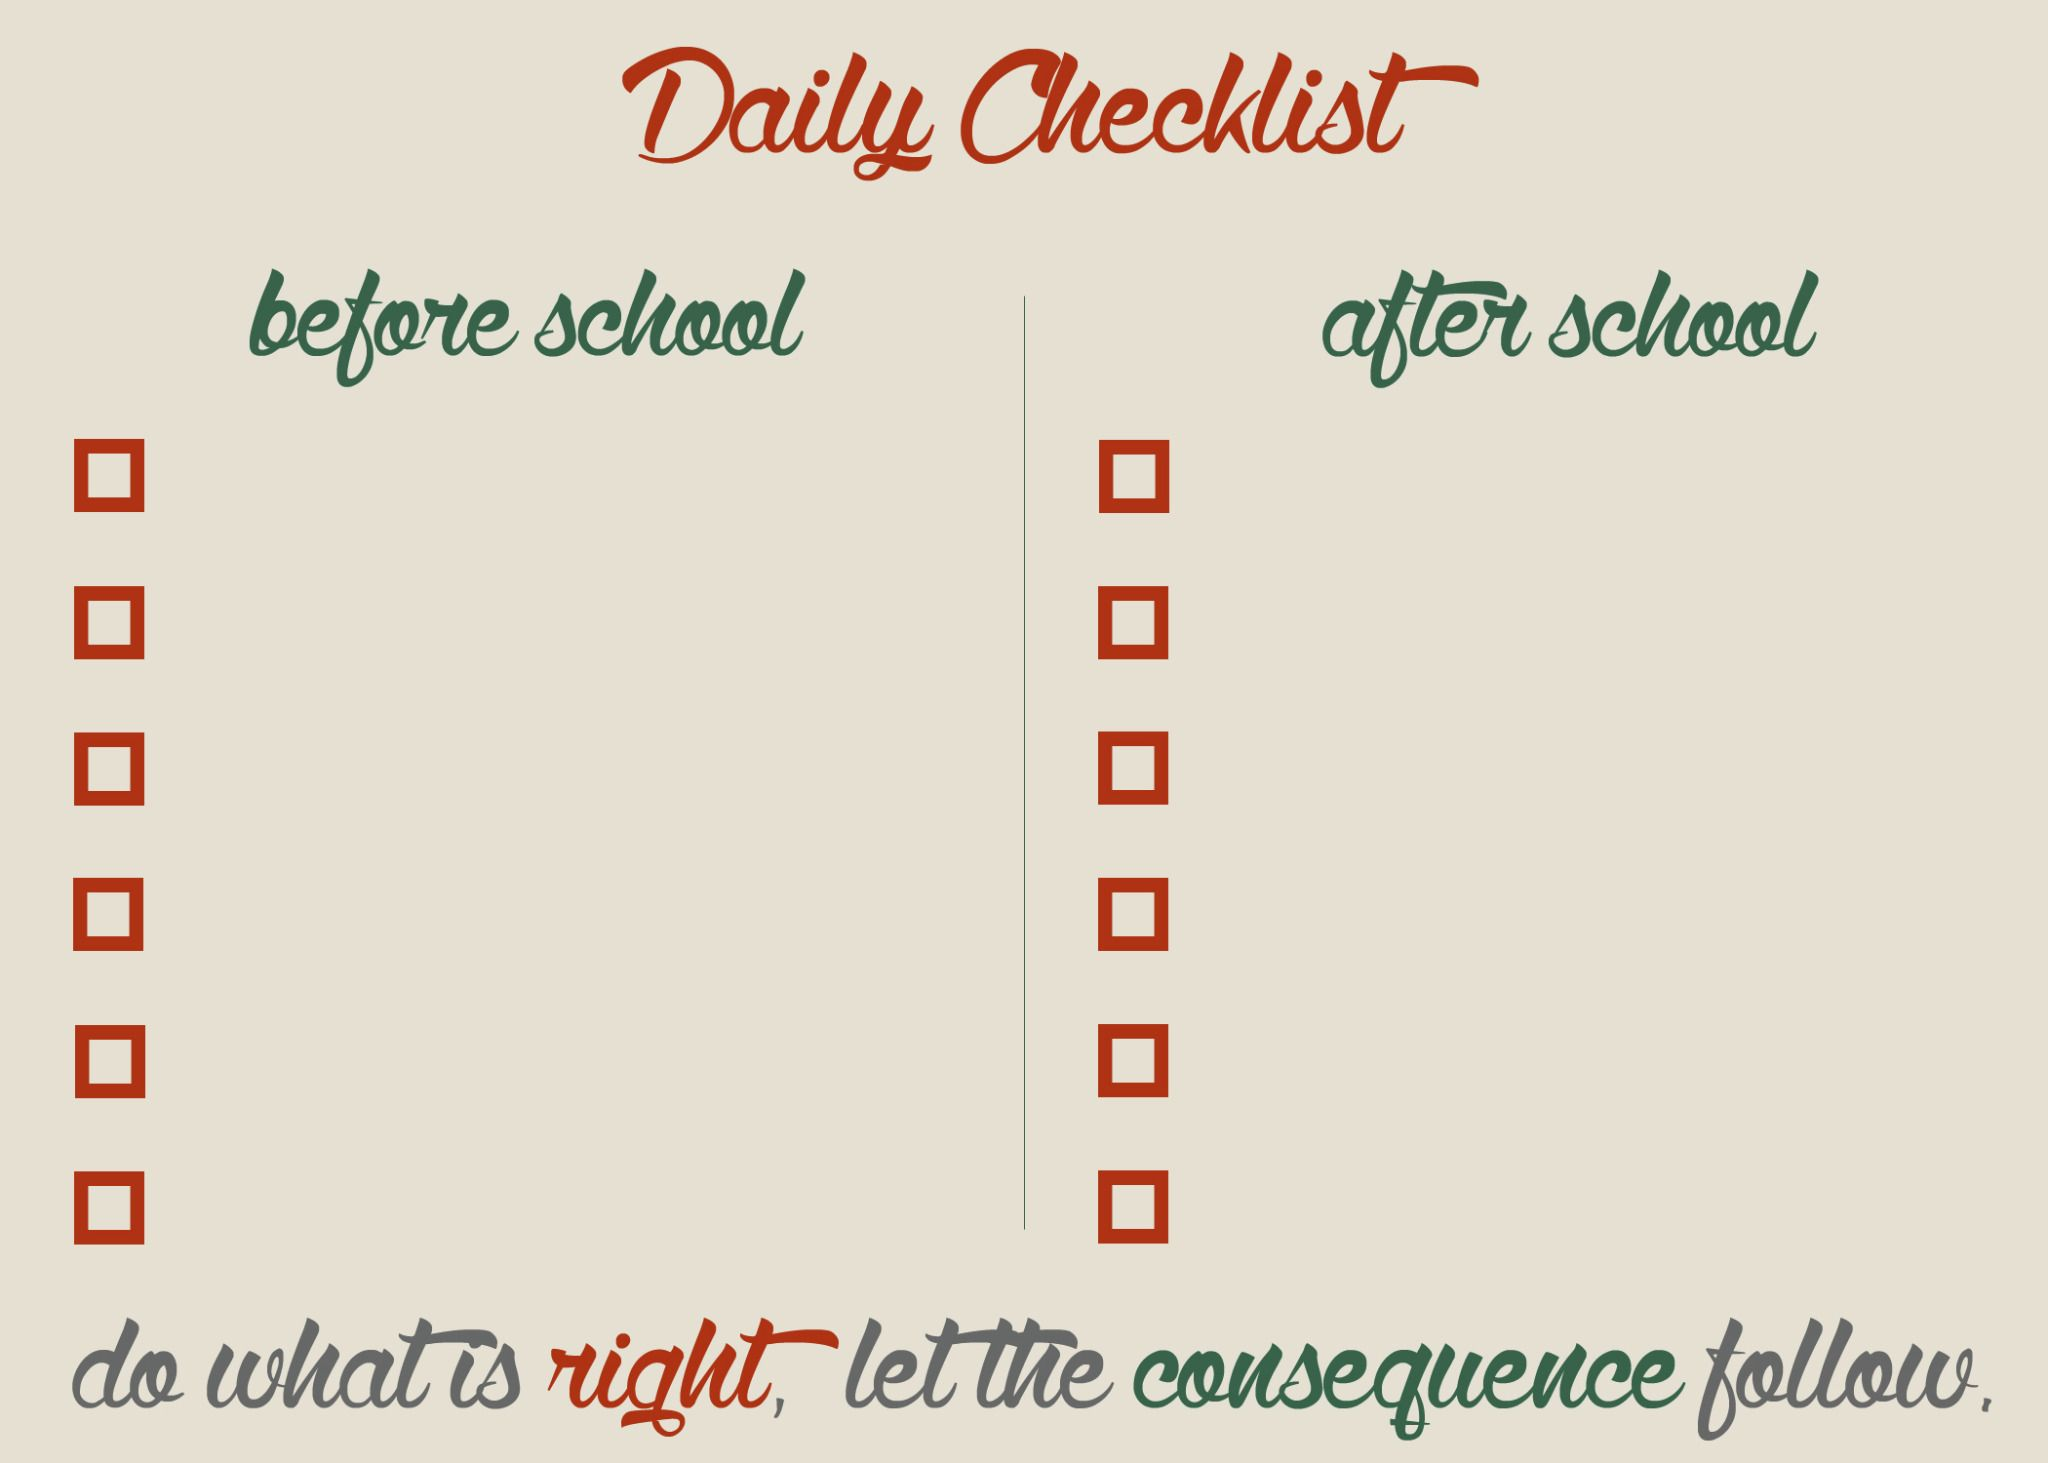 Daily Checklist BlankJpg  File Shared From Box  Parenting